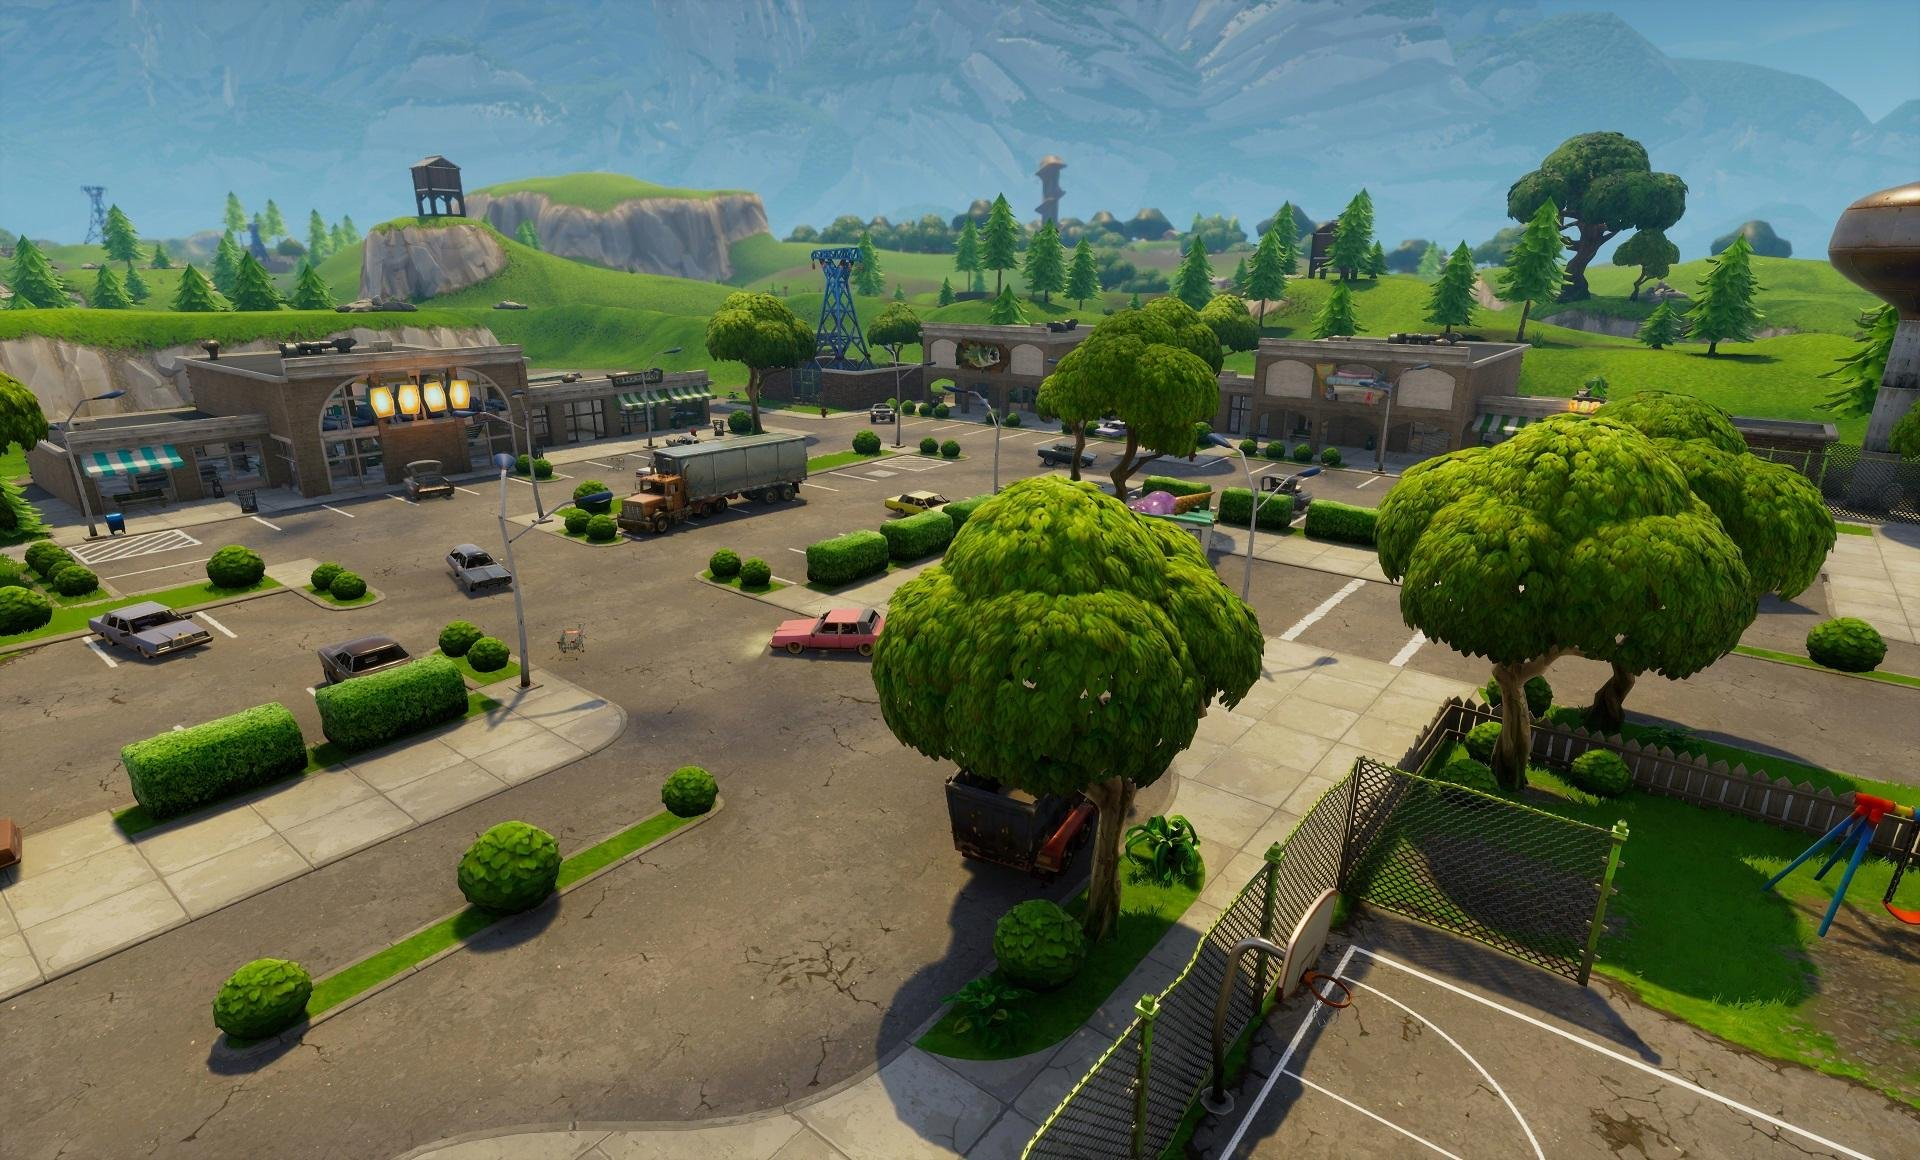 Fortnite Landscape Hd Posted By Ethan Mercado